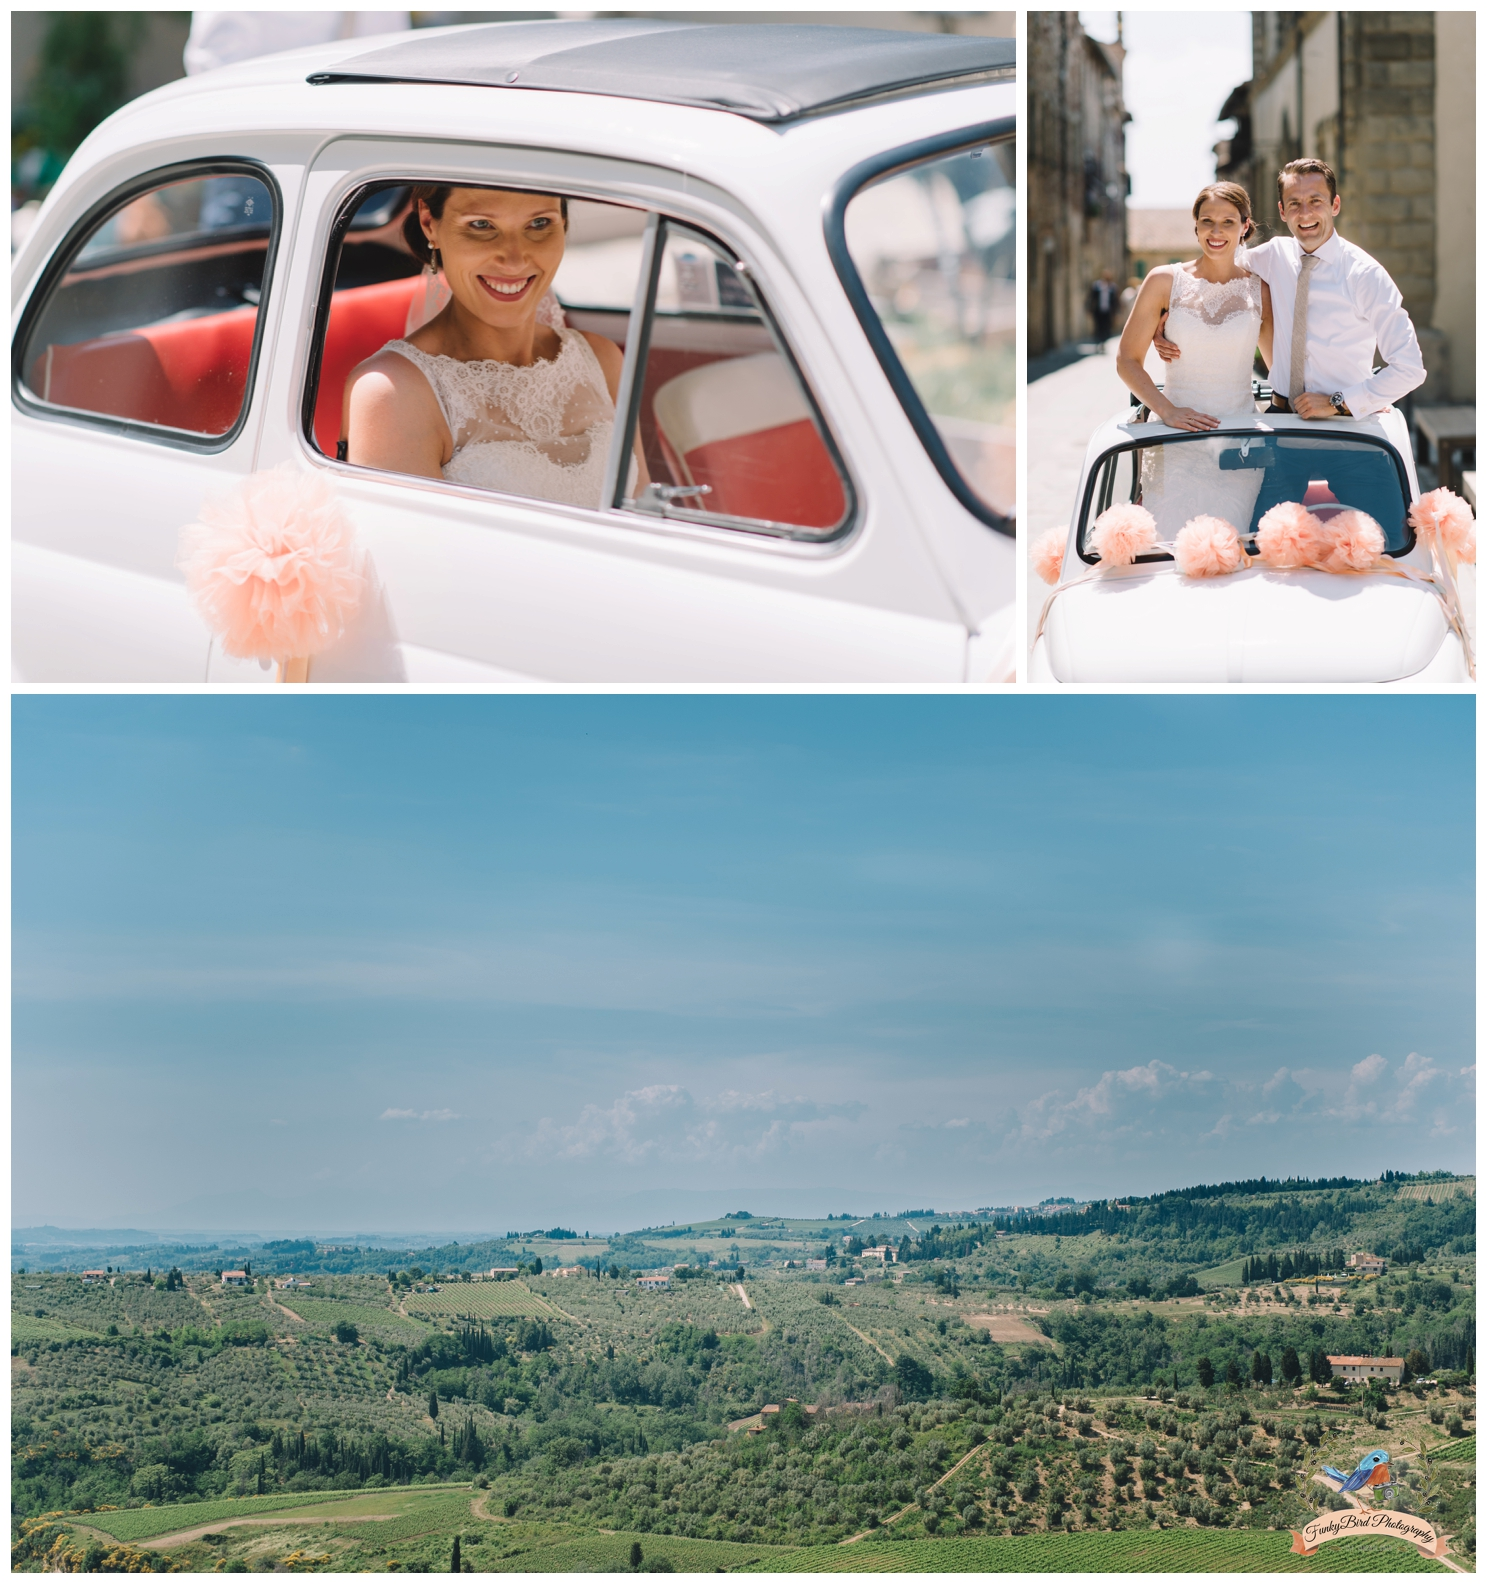 wedding photographer in tuscany, wedding in tuscany, wedding in Italy, destination wedding italy, wedding photographer in Italy, bride, trouwen in toscane, funkybird wedding design, bröllop i italien, wedding in florence, wedding venue tuscany, wedding venue italy